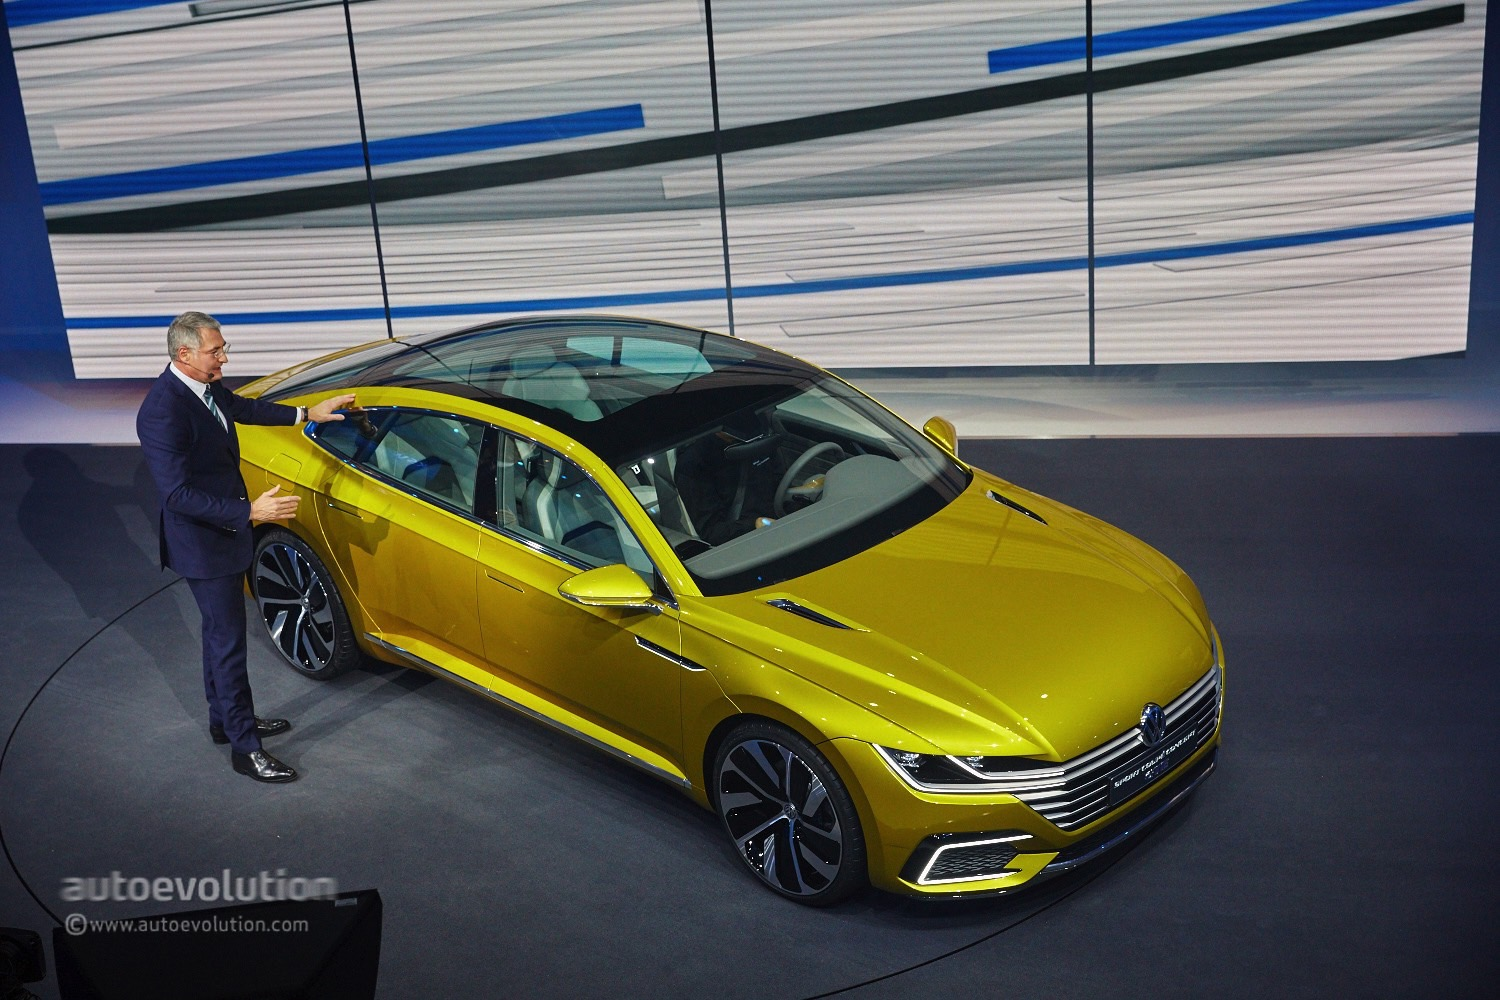 ... Coupe Concept GTE Revealed with V6 Turbo, Hybrid AWD , Live Photos